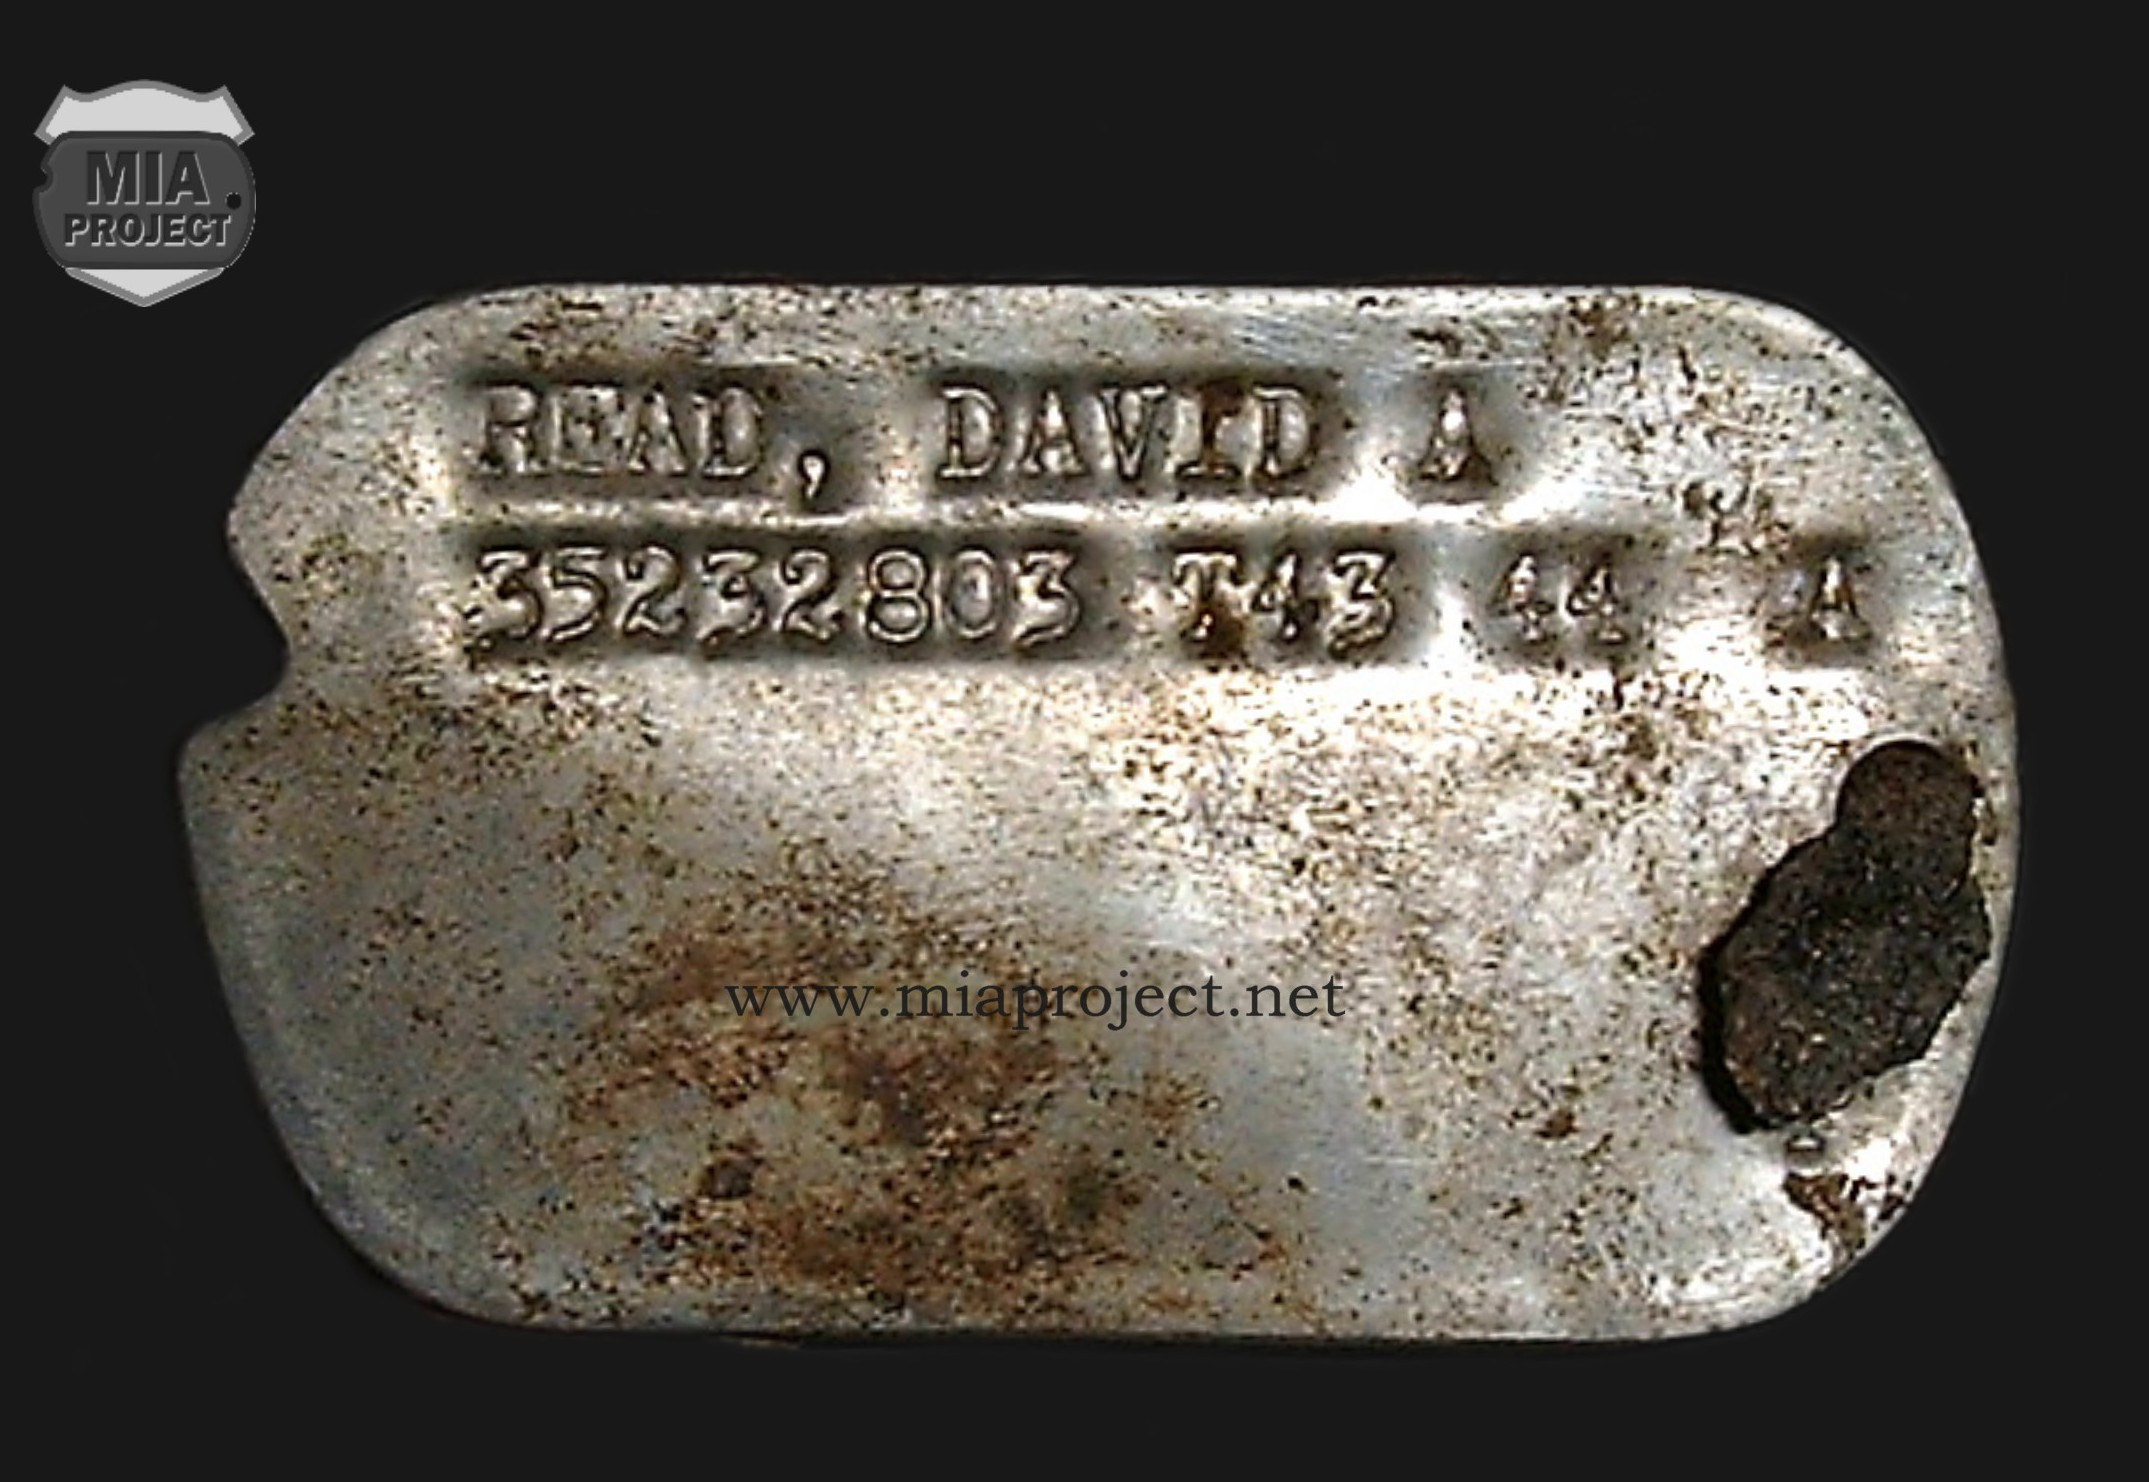 Read dog tag edited